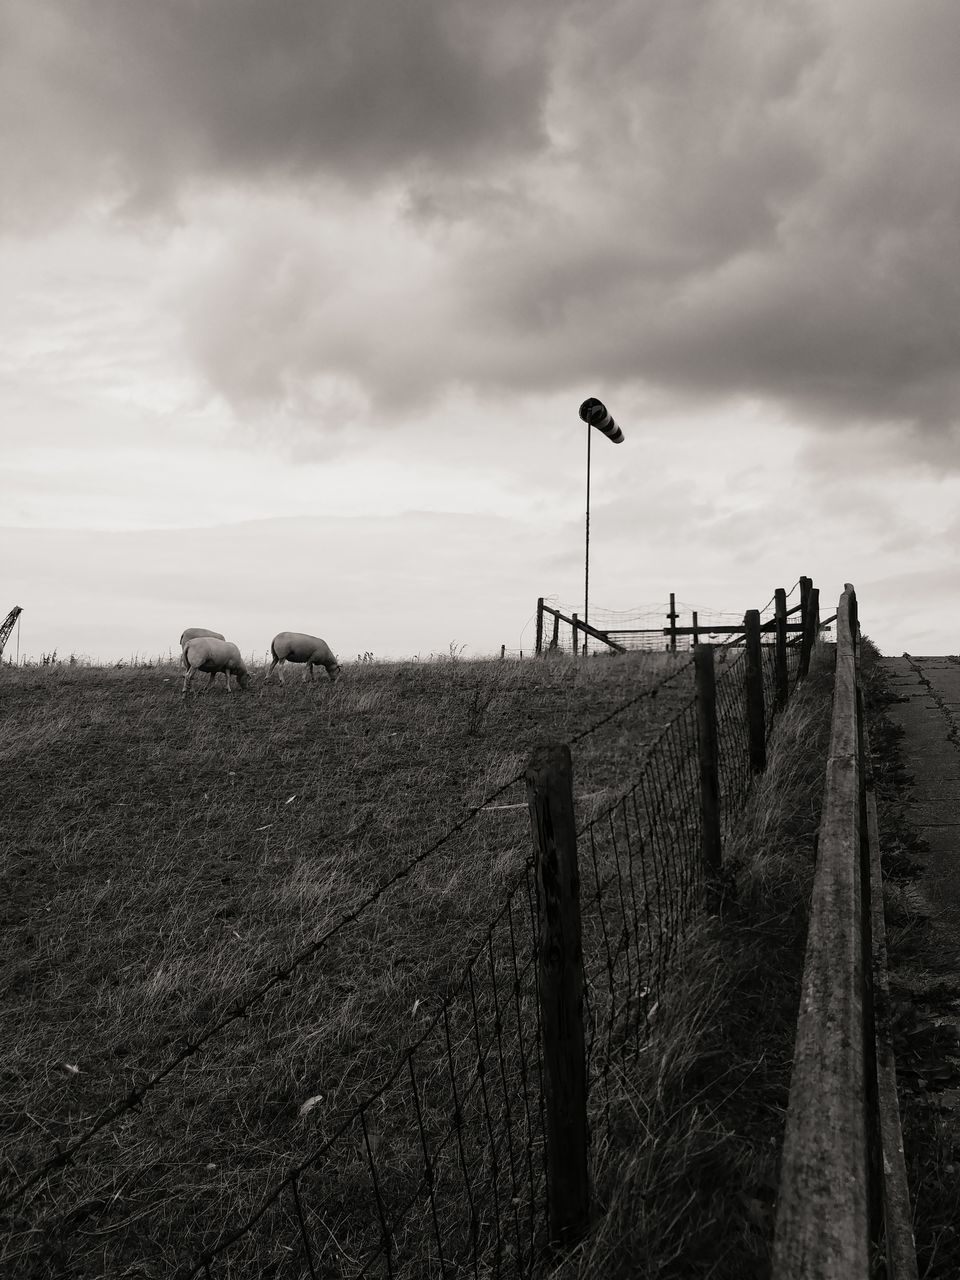 cloud - sky, sky, field, grass, outdoors, landscape, nature, day, animal themes, mammal, rural scene, no people, sheep, domestic animals, beauty in nature